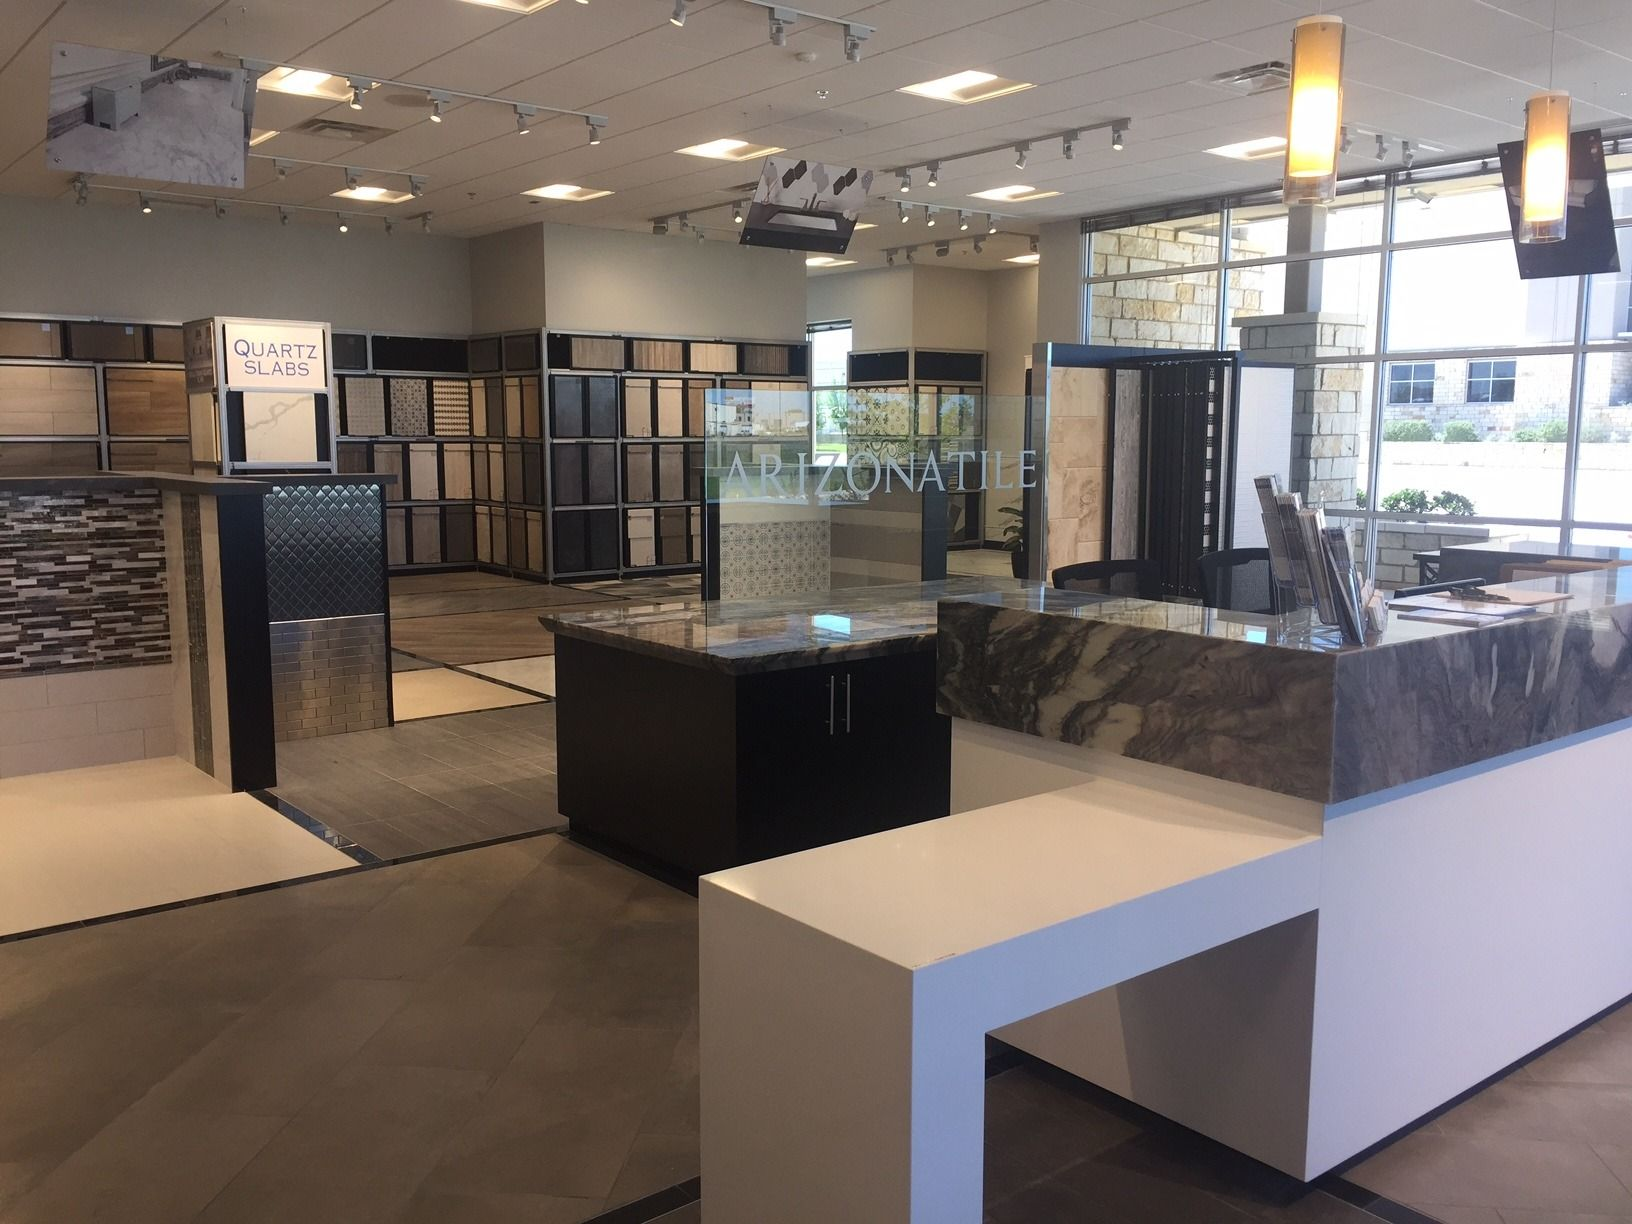 Arizona Tile the premier importer of natural stone and ceramic tile with 28 branches in 8 states has a solid reputation as an industry leader in both products and customer serviceWe have been privately owned and operated for over 45 years. Hello Austin We Are Officially Open Austin2017 Arizonatile Showrooms Https Www Arizonatile Com En Blog 2017 March Introducing Tile Stores Tiles Remodel